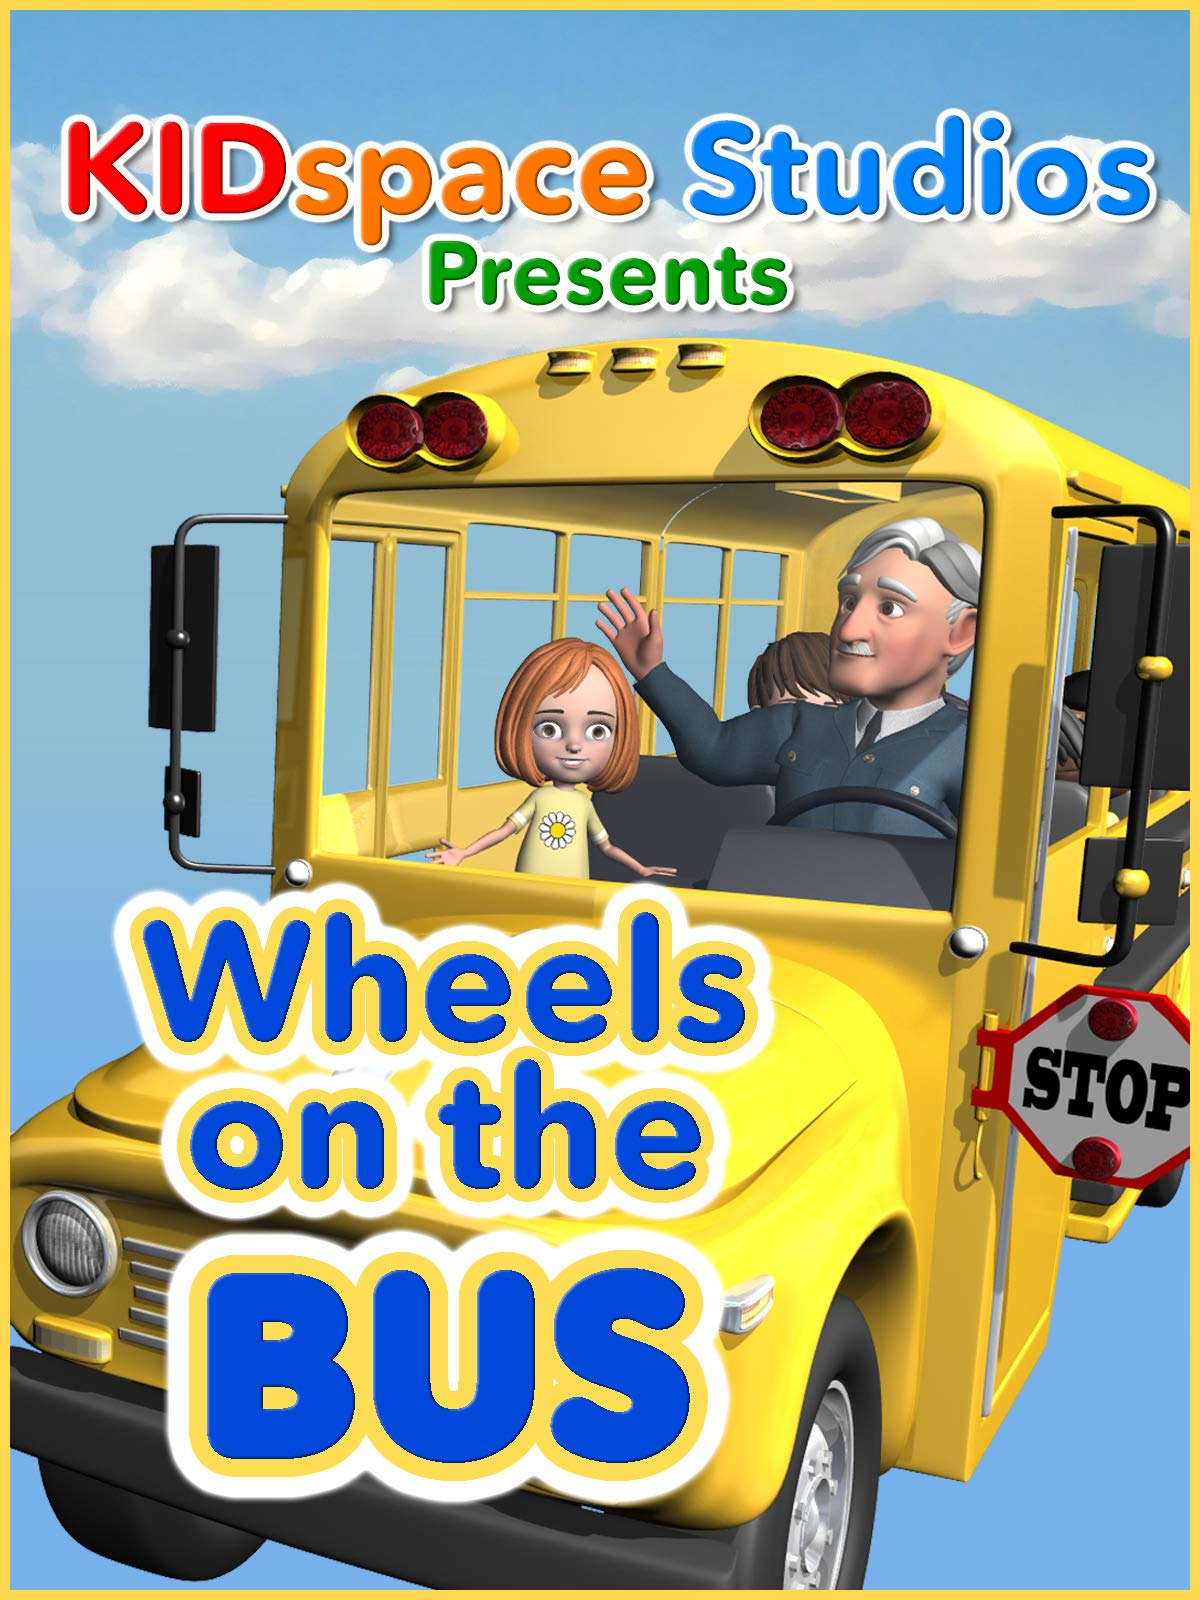 KIDspace Studios Presents: Wheels on the Bus on Amazon Prime Video UK